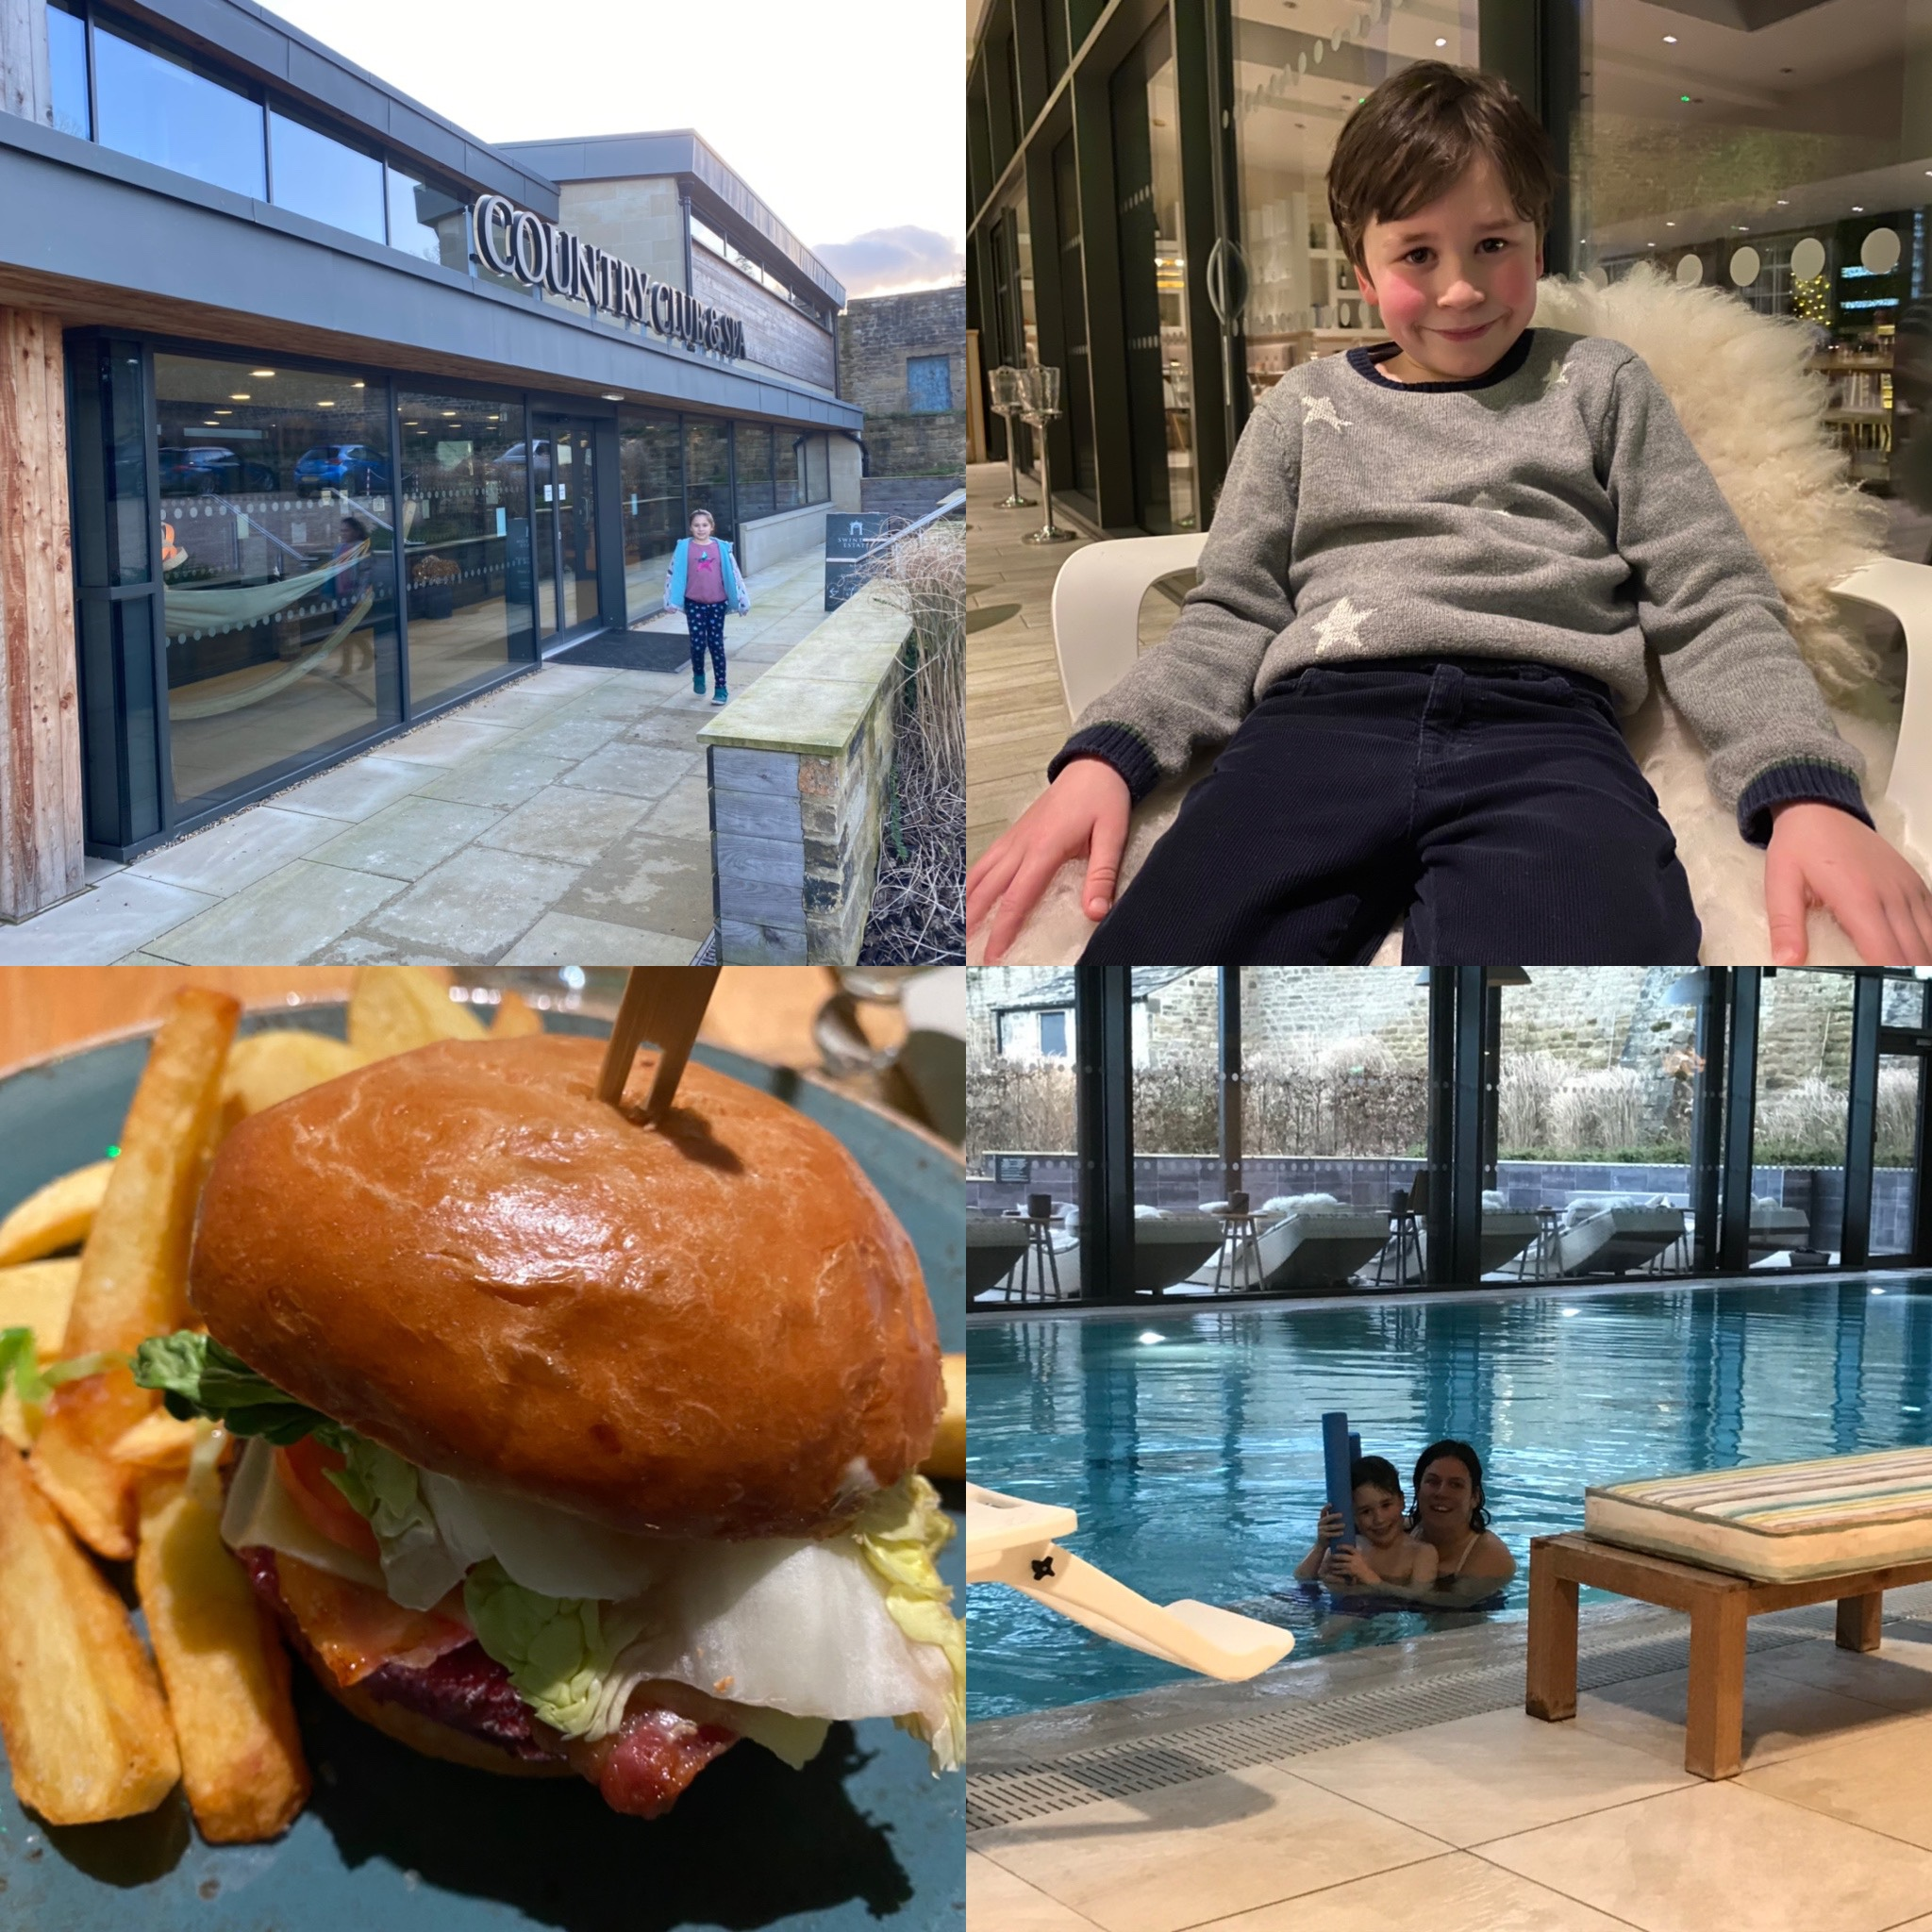 a collage of photos from a hotel including swimming pool, burger meal and a boy in a chair